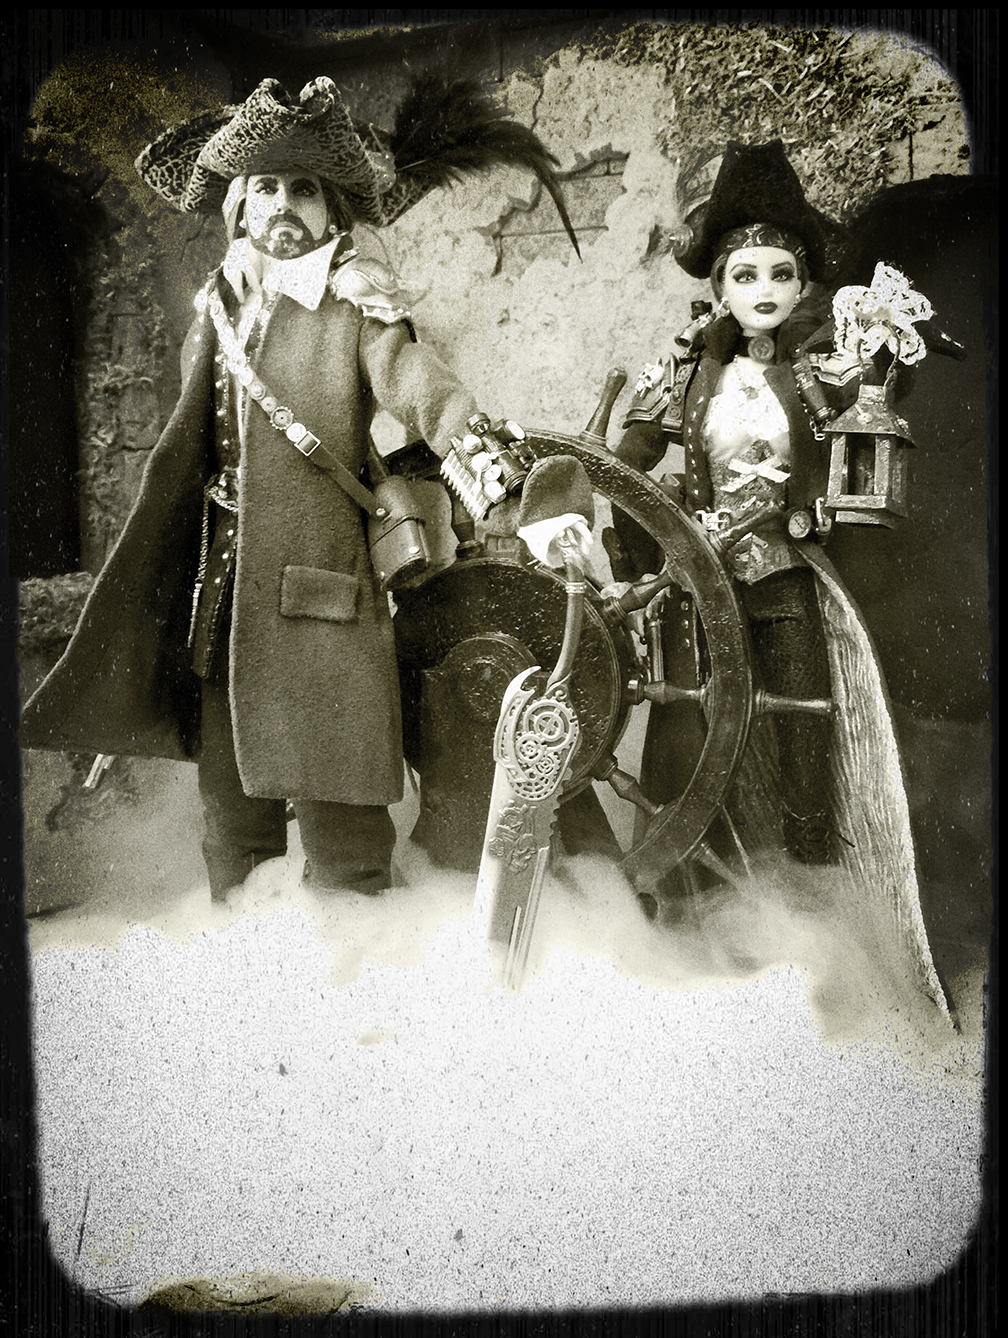 Steampunk Swashbucklers Duo